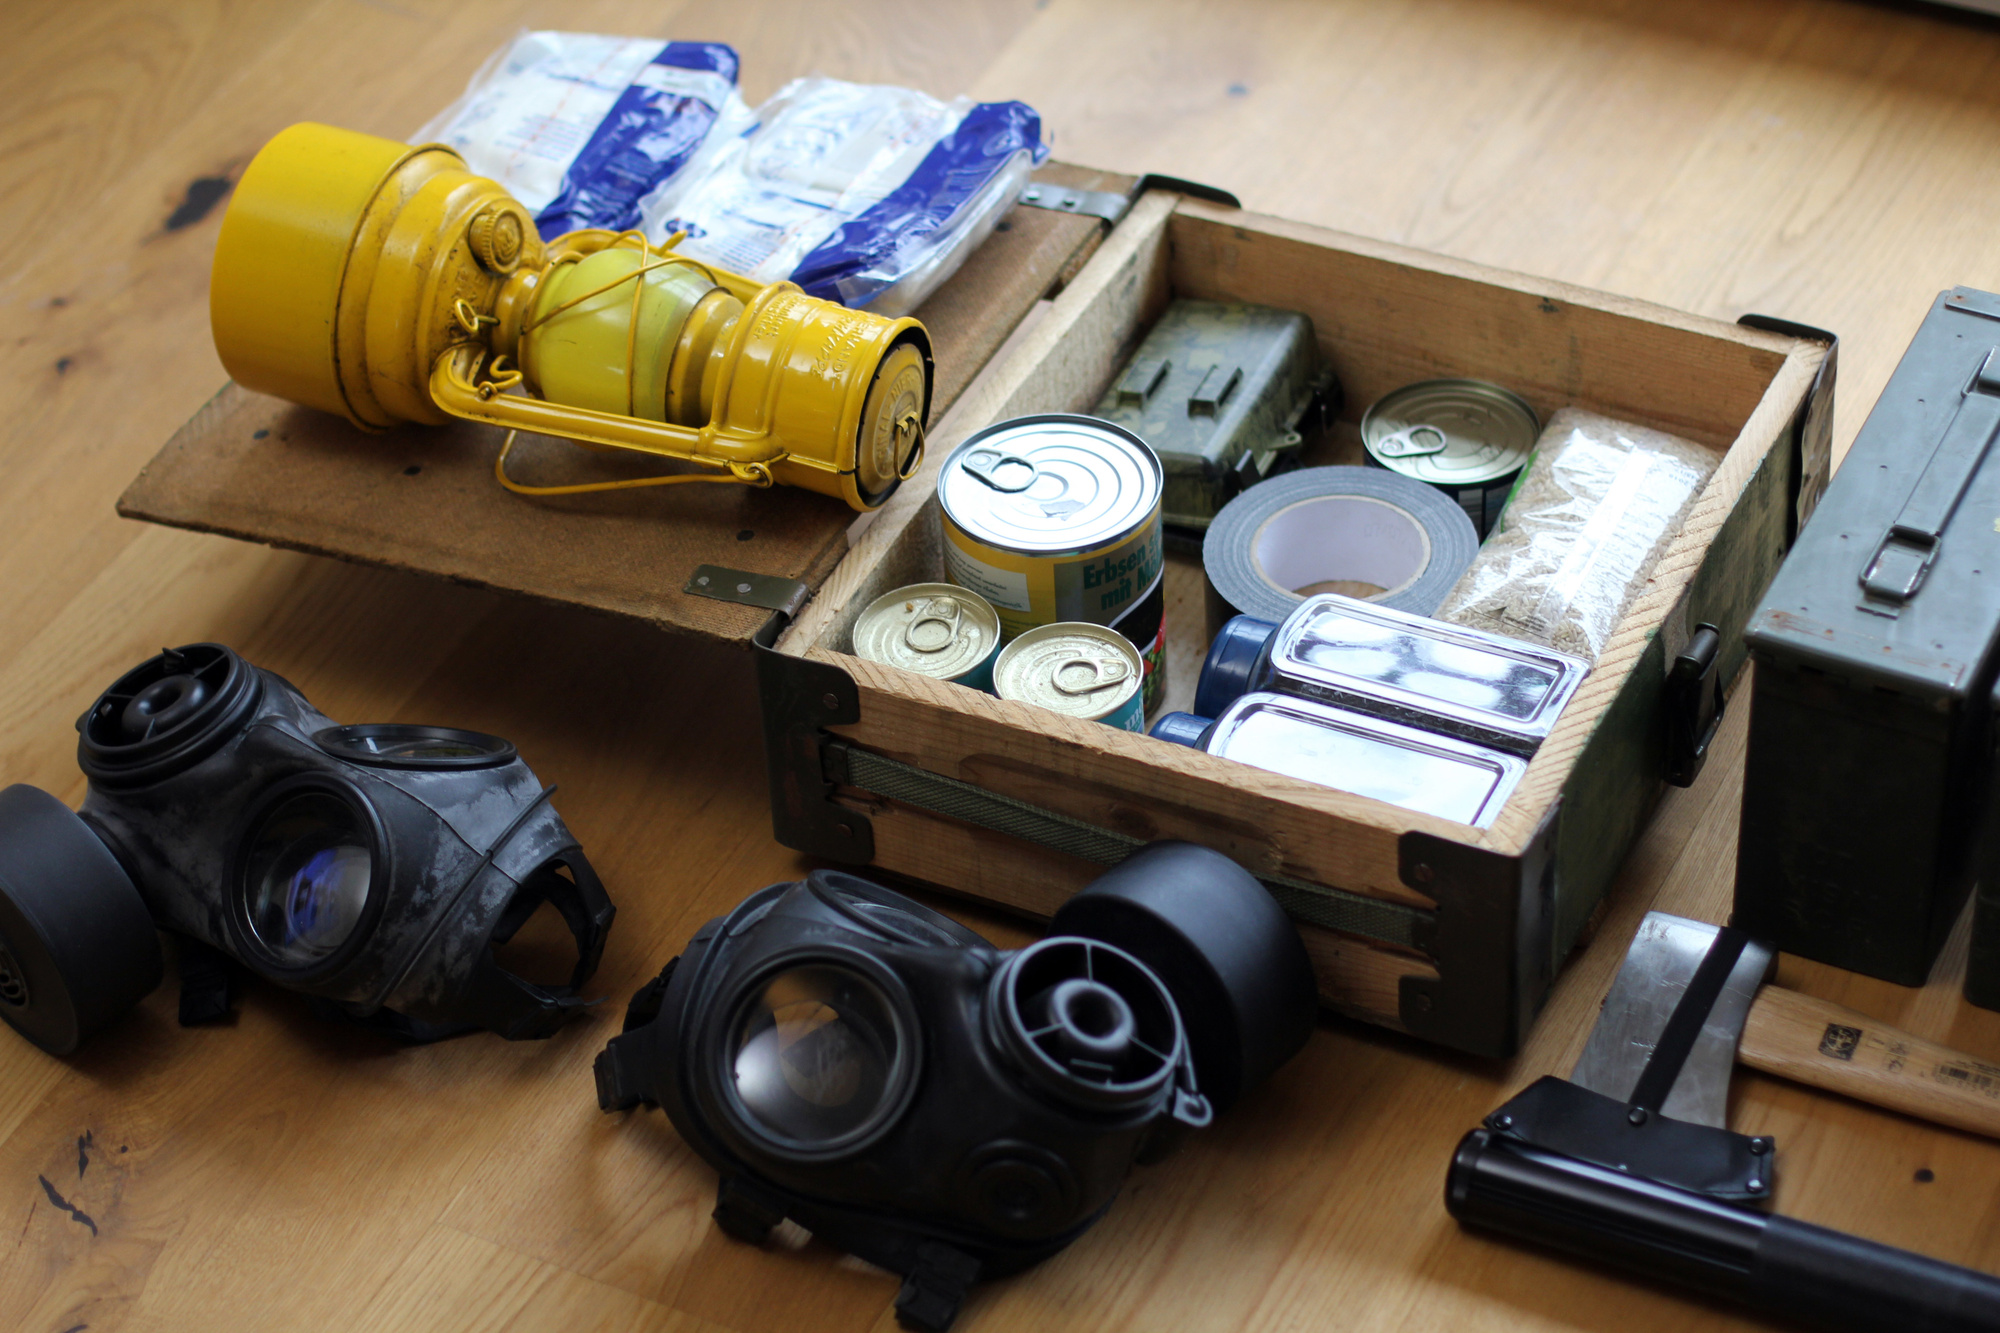 Ready, Set, Prep! 15 Super Useful Pieces of Prepper Gear You Should Stock Up On